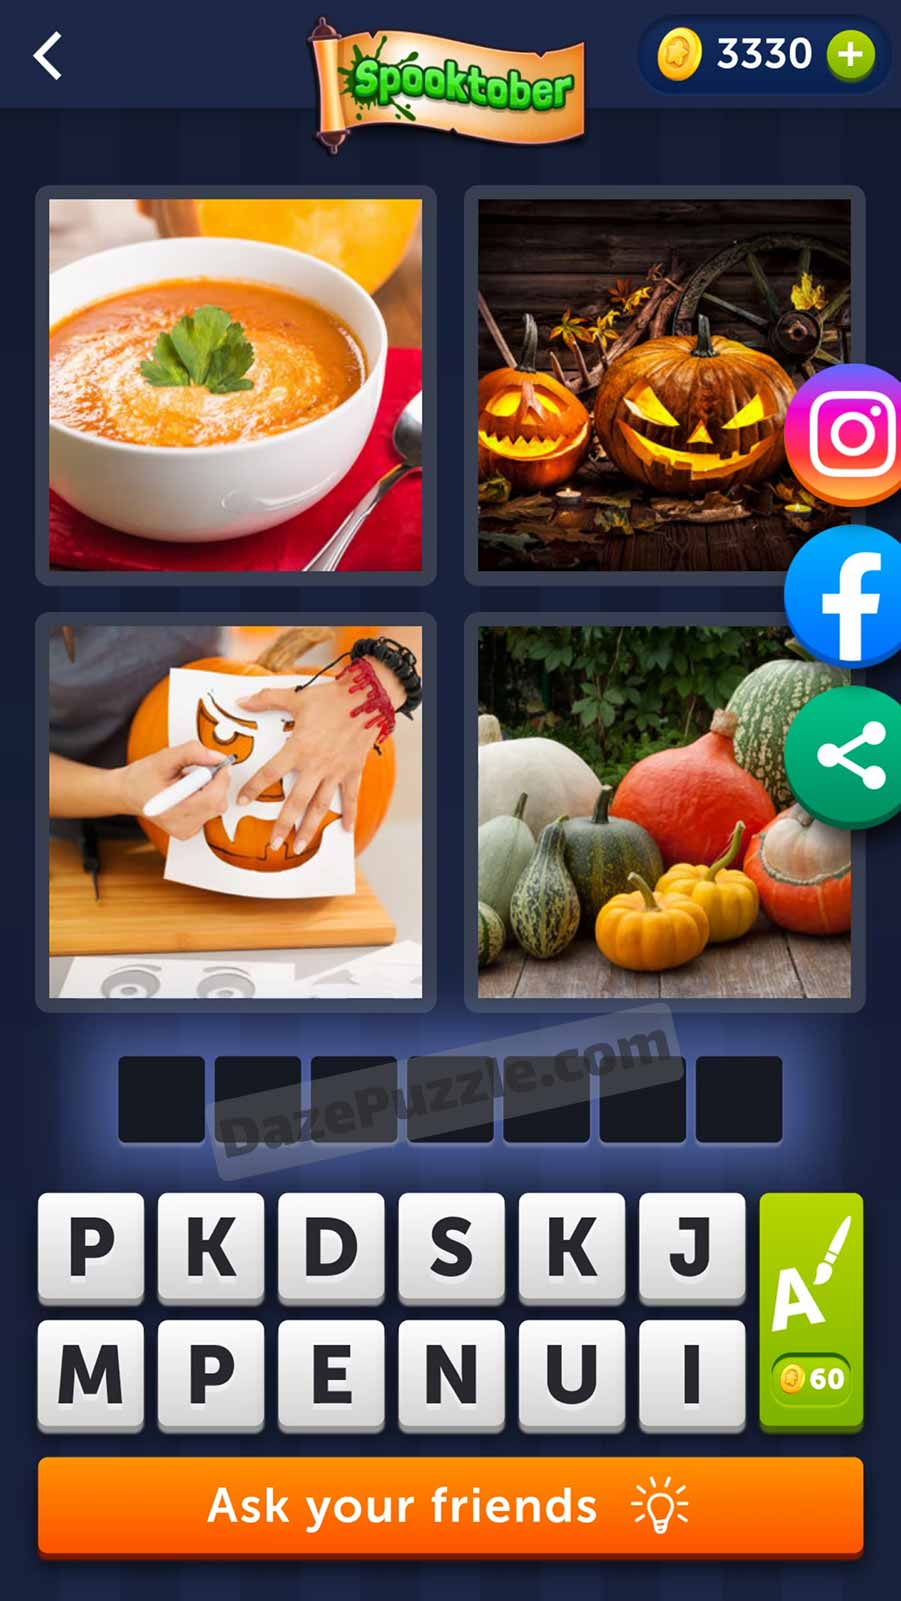 4 pics 1 word october 11 2021 daily puzzle answer